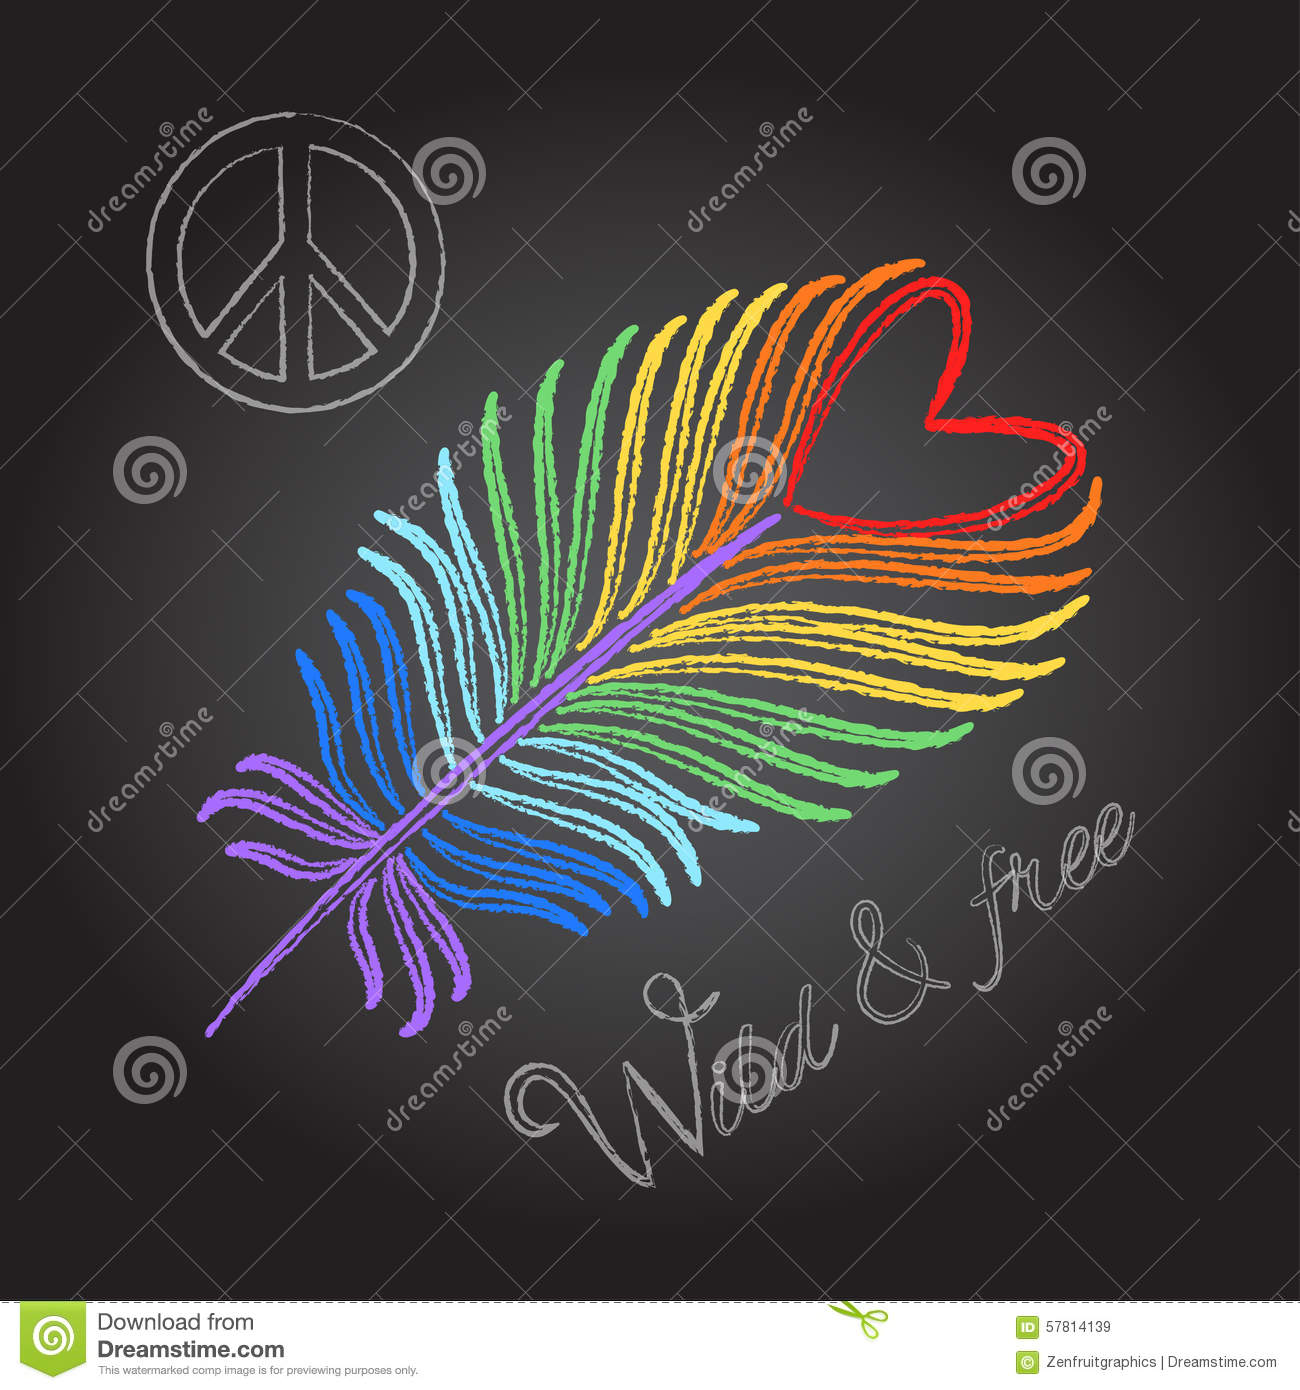 Wallpaper Abstrak 3d Rainbow Feather And Peace Sign Colorful Chalk Drawing